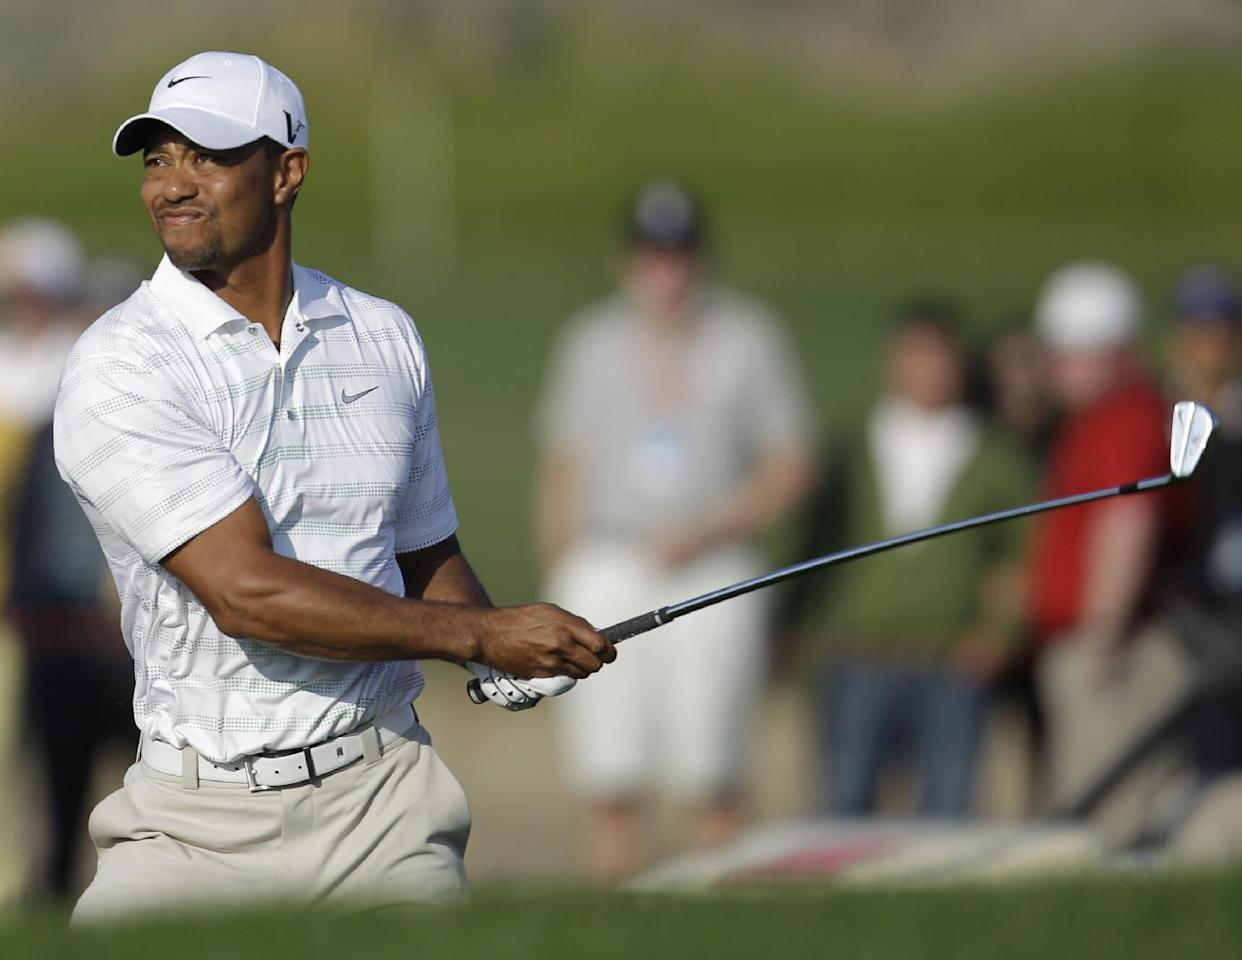 Tiger Woods from U.S. reacts on the 17th hole during the second round of Abu Dhabi HSBC Championship, Friday, Jan. 27, 2012 in Abu Dhabi, United Arab Emirates. (AP Photo/Kamran Jebreili)